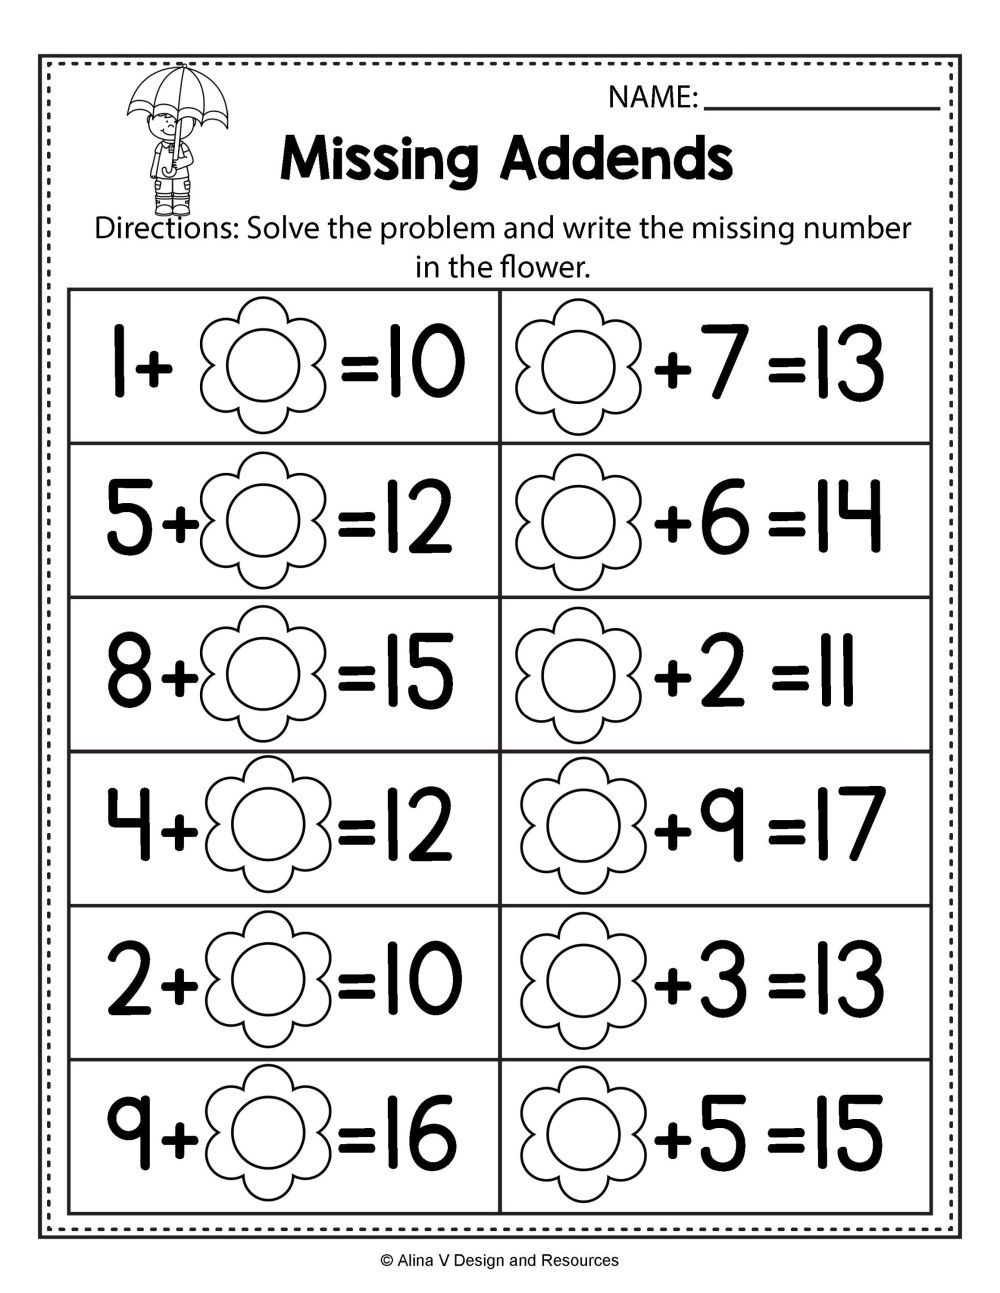 medium resolution of 23 Best 1th Grade Math Worksheets images on Best Worksheets Collection